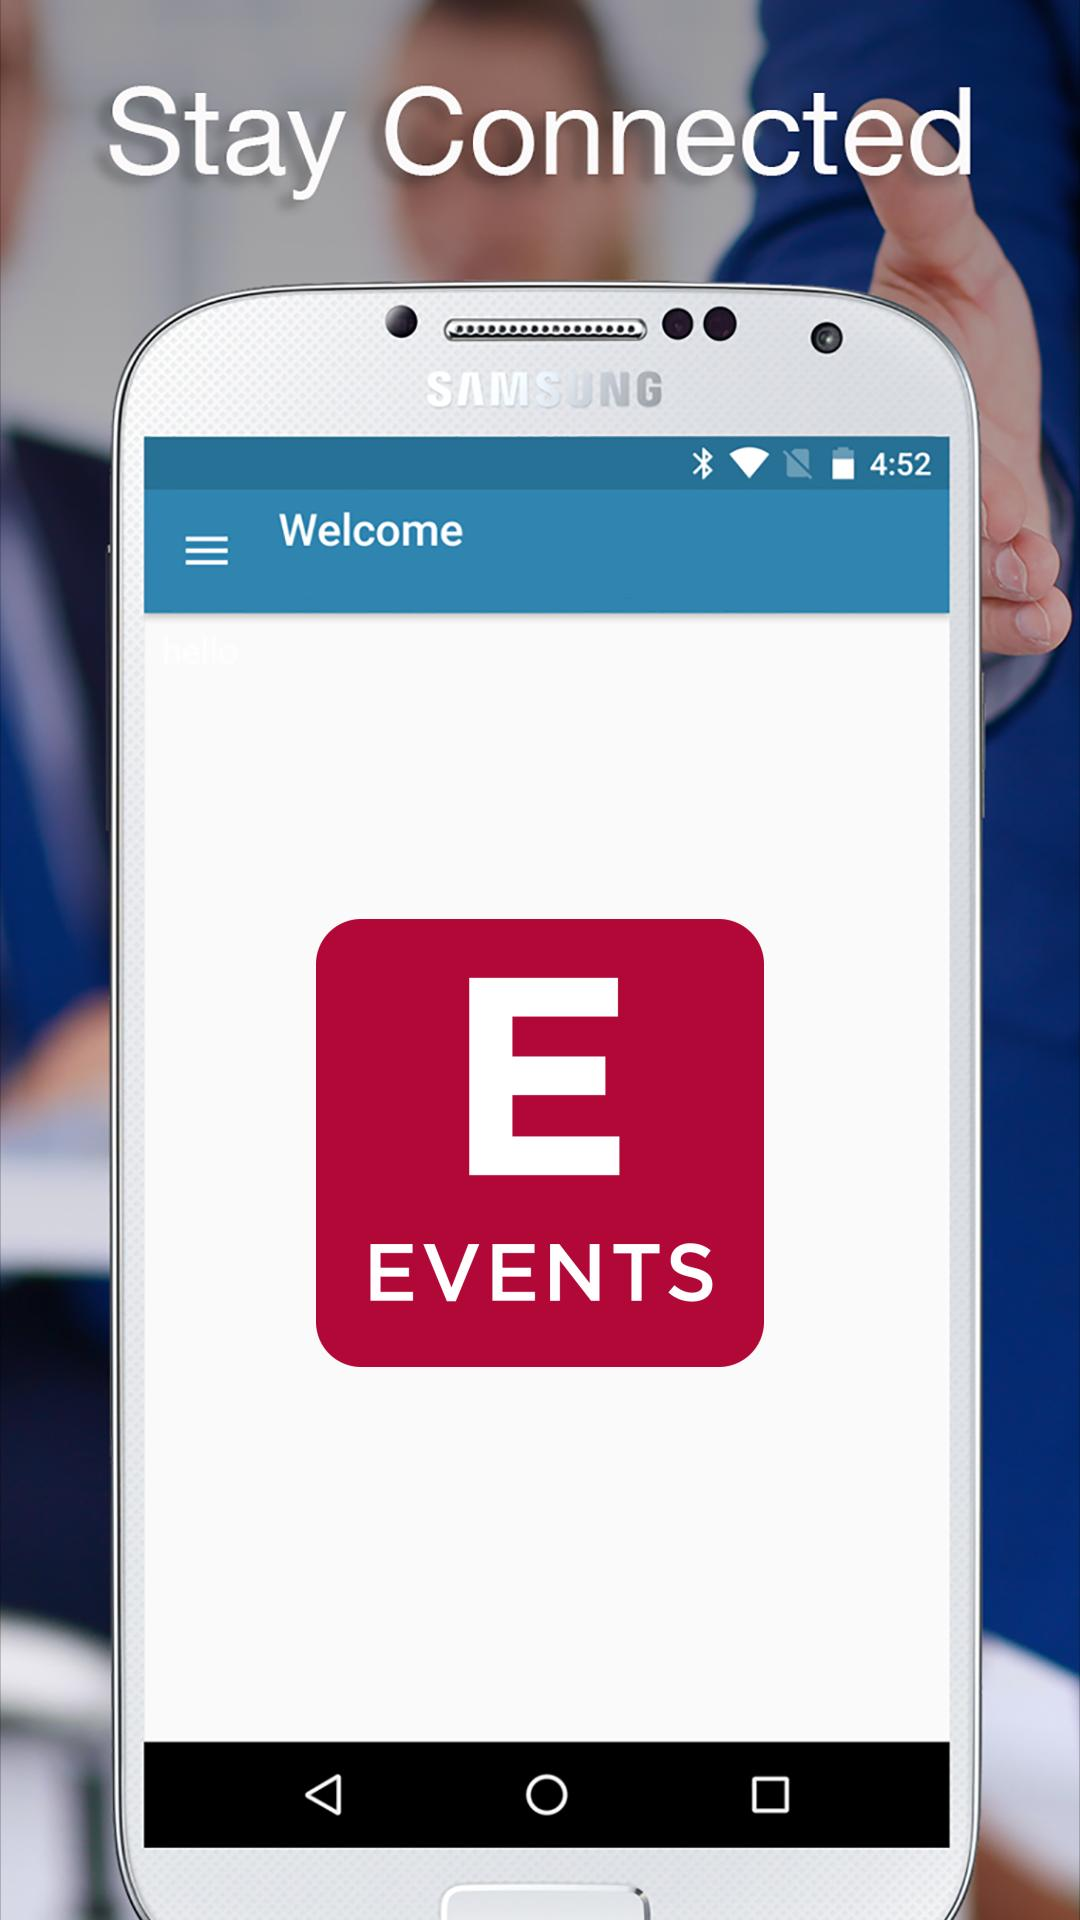 Don't forget to download (and use) the Educause Events App